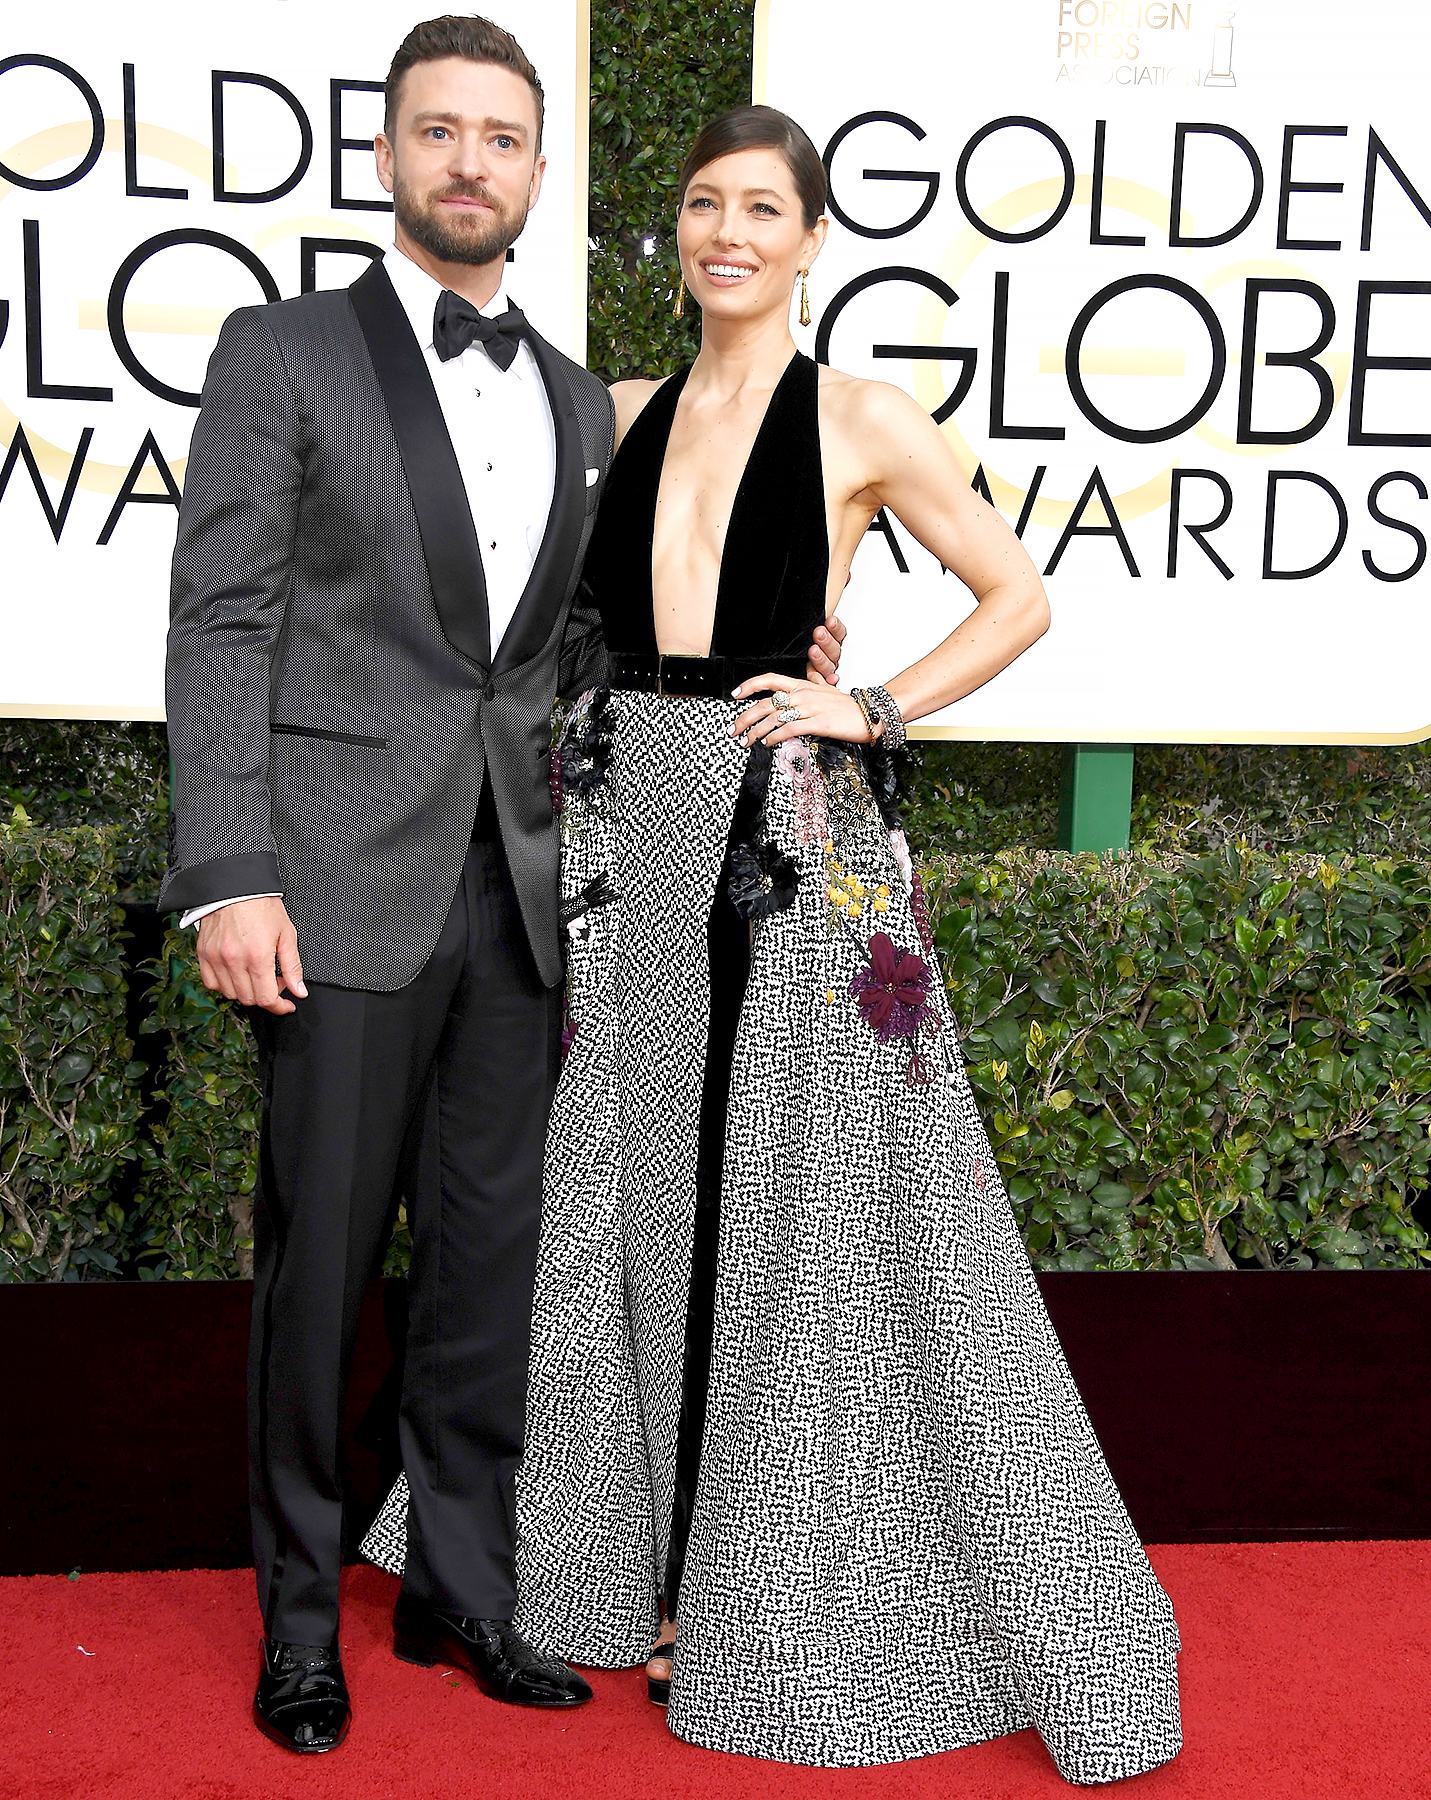 Justin Timberlake and Jessica Biel attend the 74th Annual Golden Globe Awards at the Beverly Hilton Hotel on Jan. 8, 2017, in Beverly Hills.